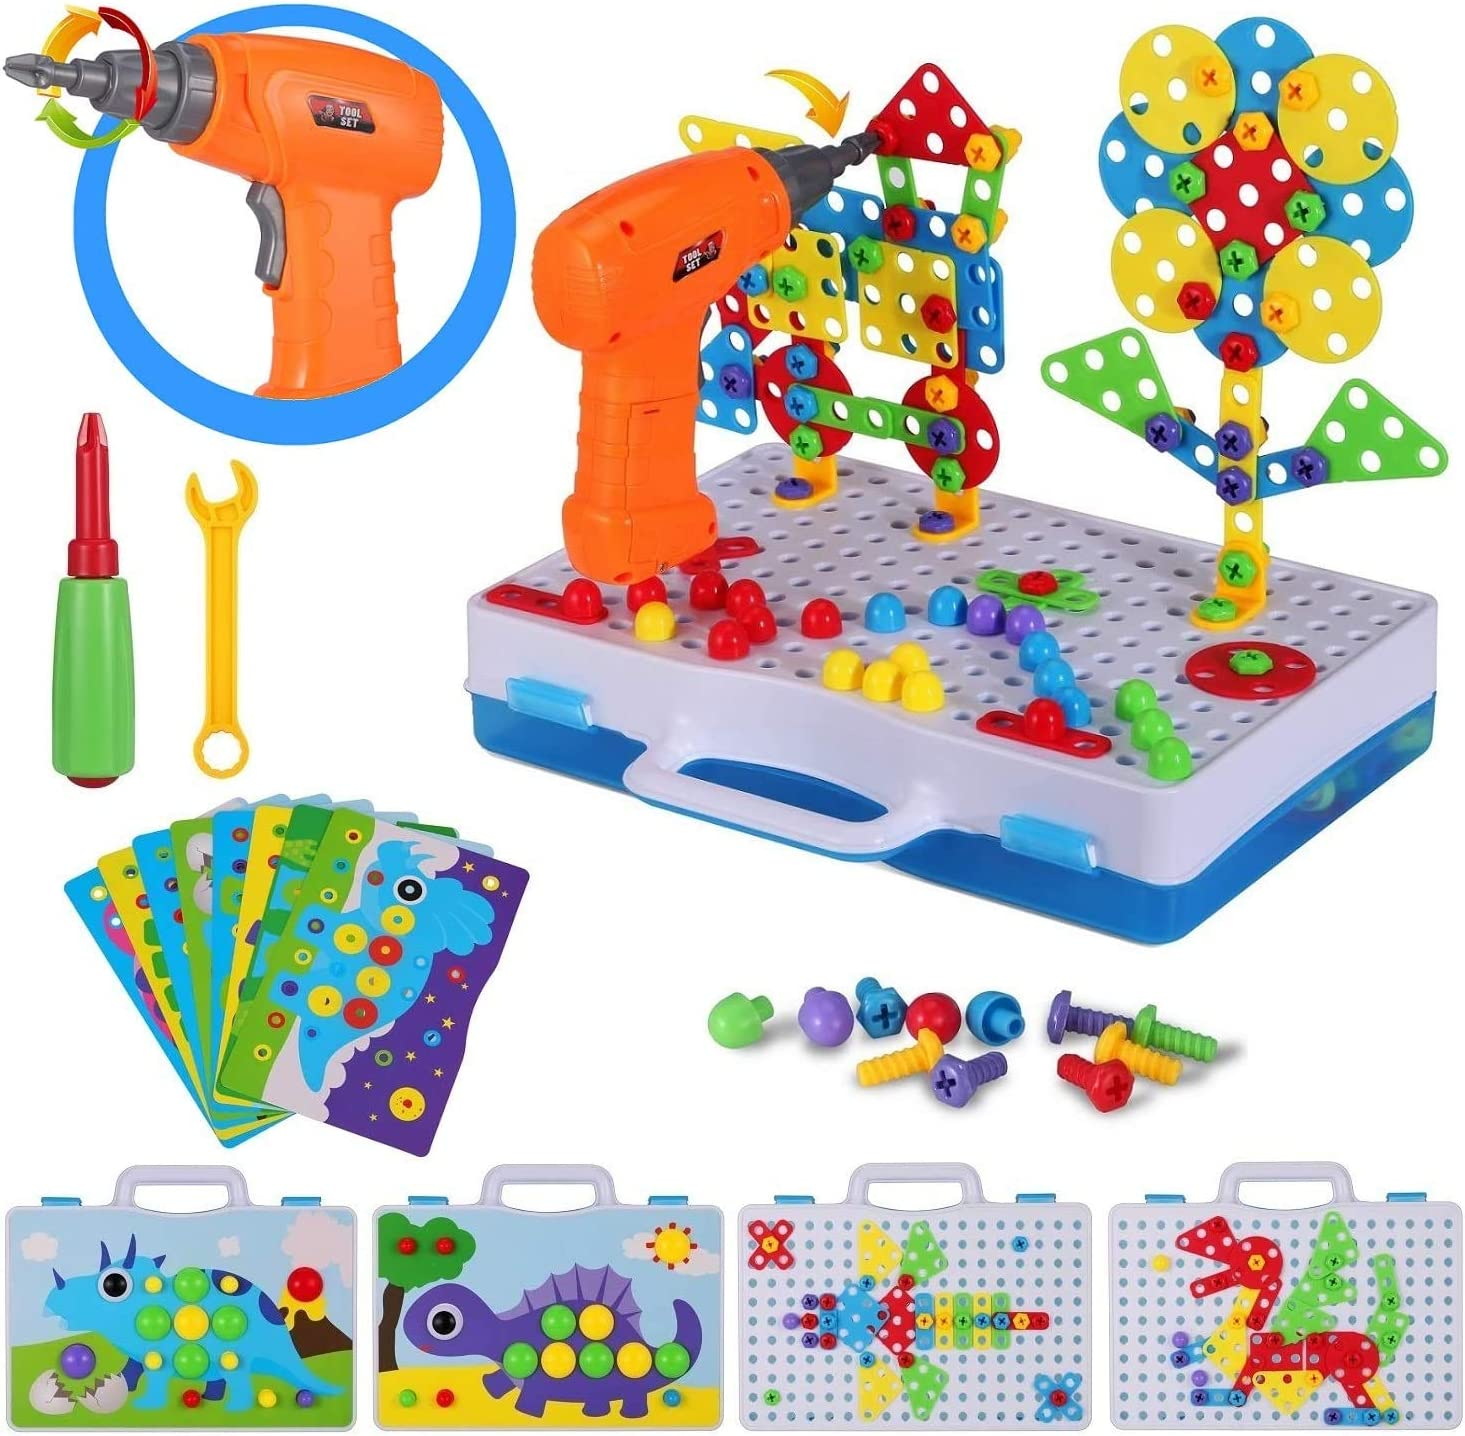 Pcs Electric DIY Mosaic Drill Puzzle Kit Creative Building Blocks Construction Game Tool Kit 245 STEM Educational Toy for Boy and Girl 5 6 7 8 9 10 Year Old